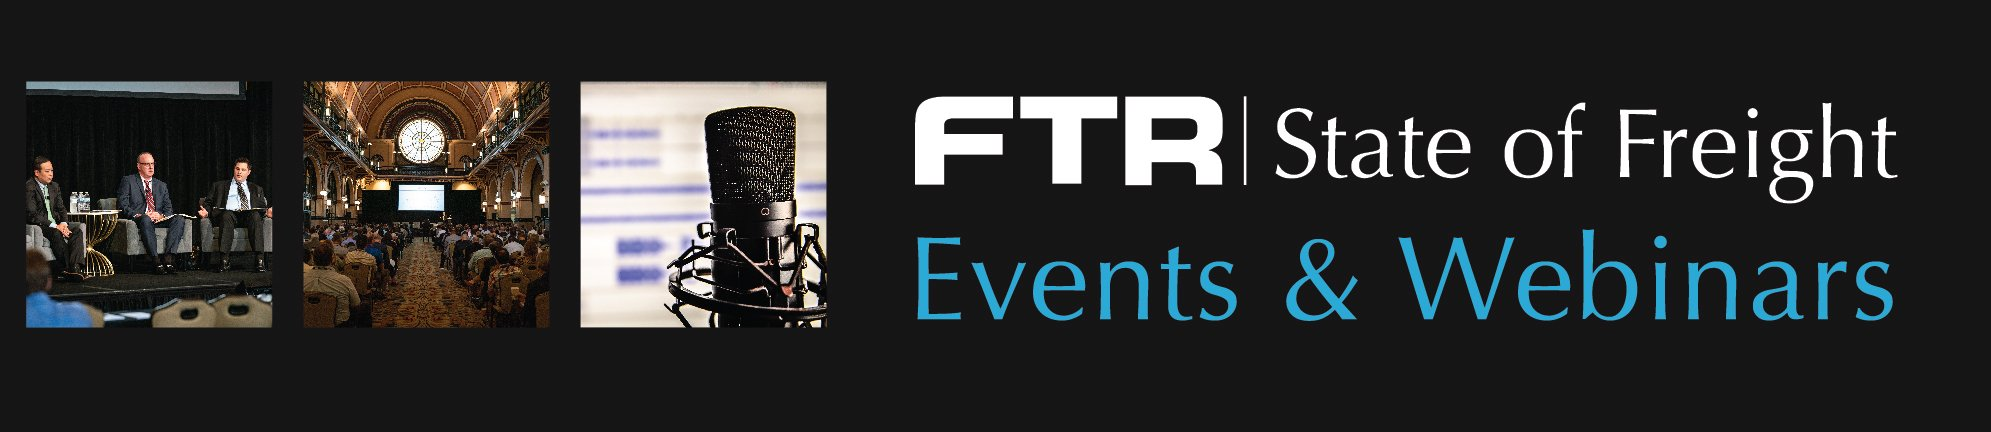 FTR State of Freight Events & Webinars